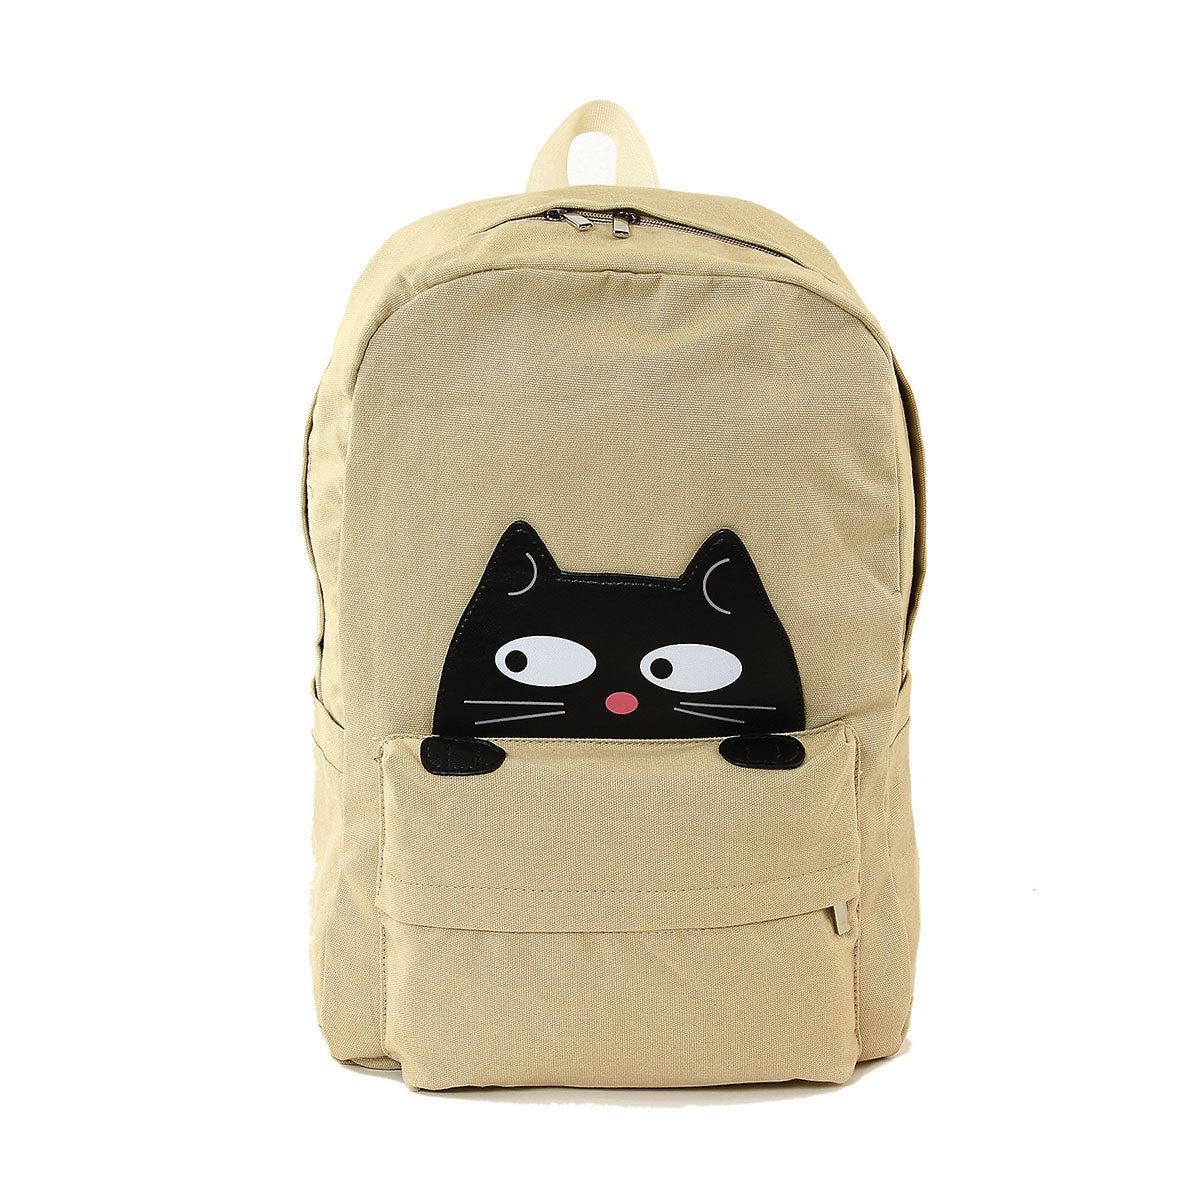 Sleepyville Critters - Peeking Black Cat Canvas Backpack, front view